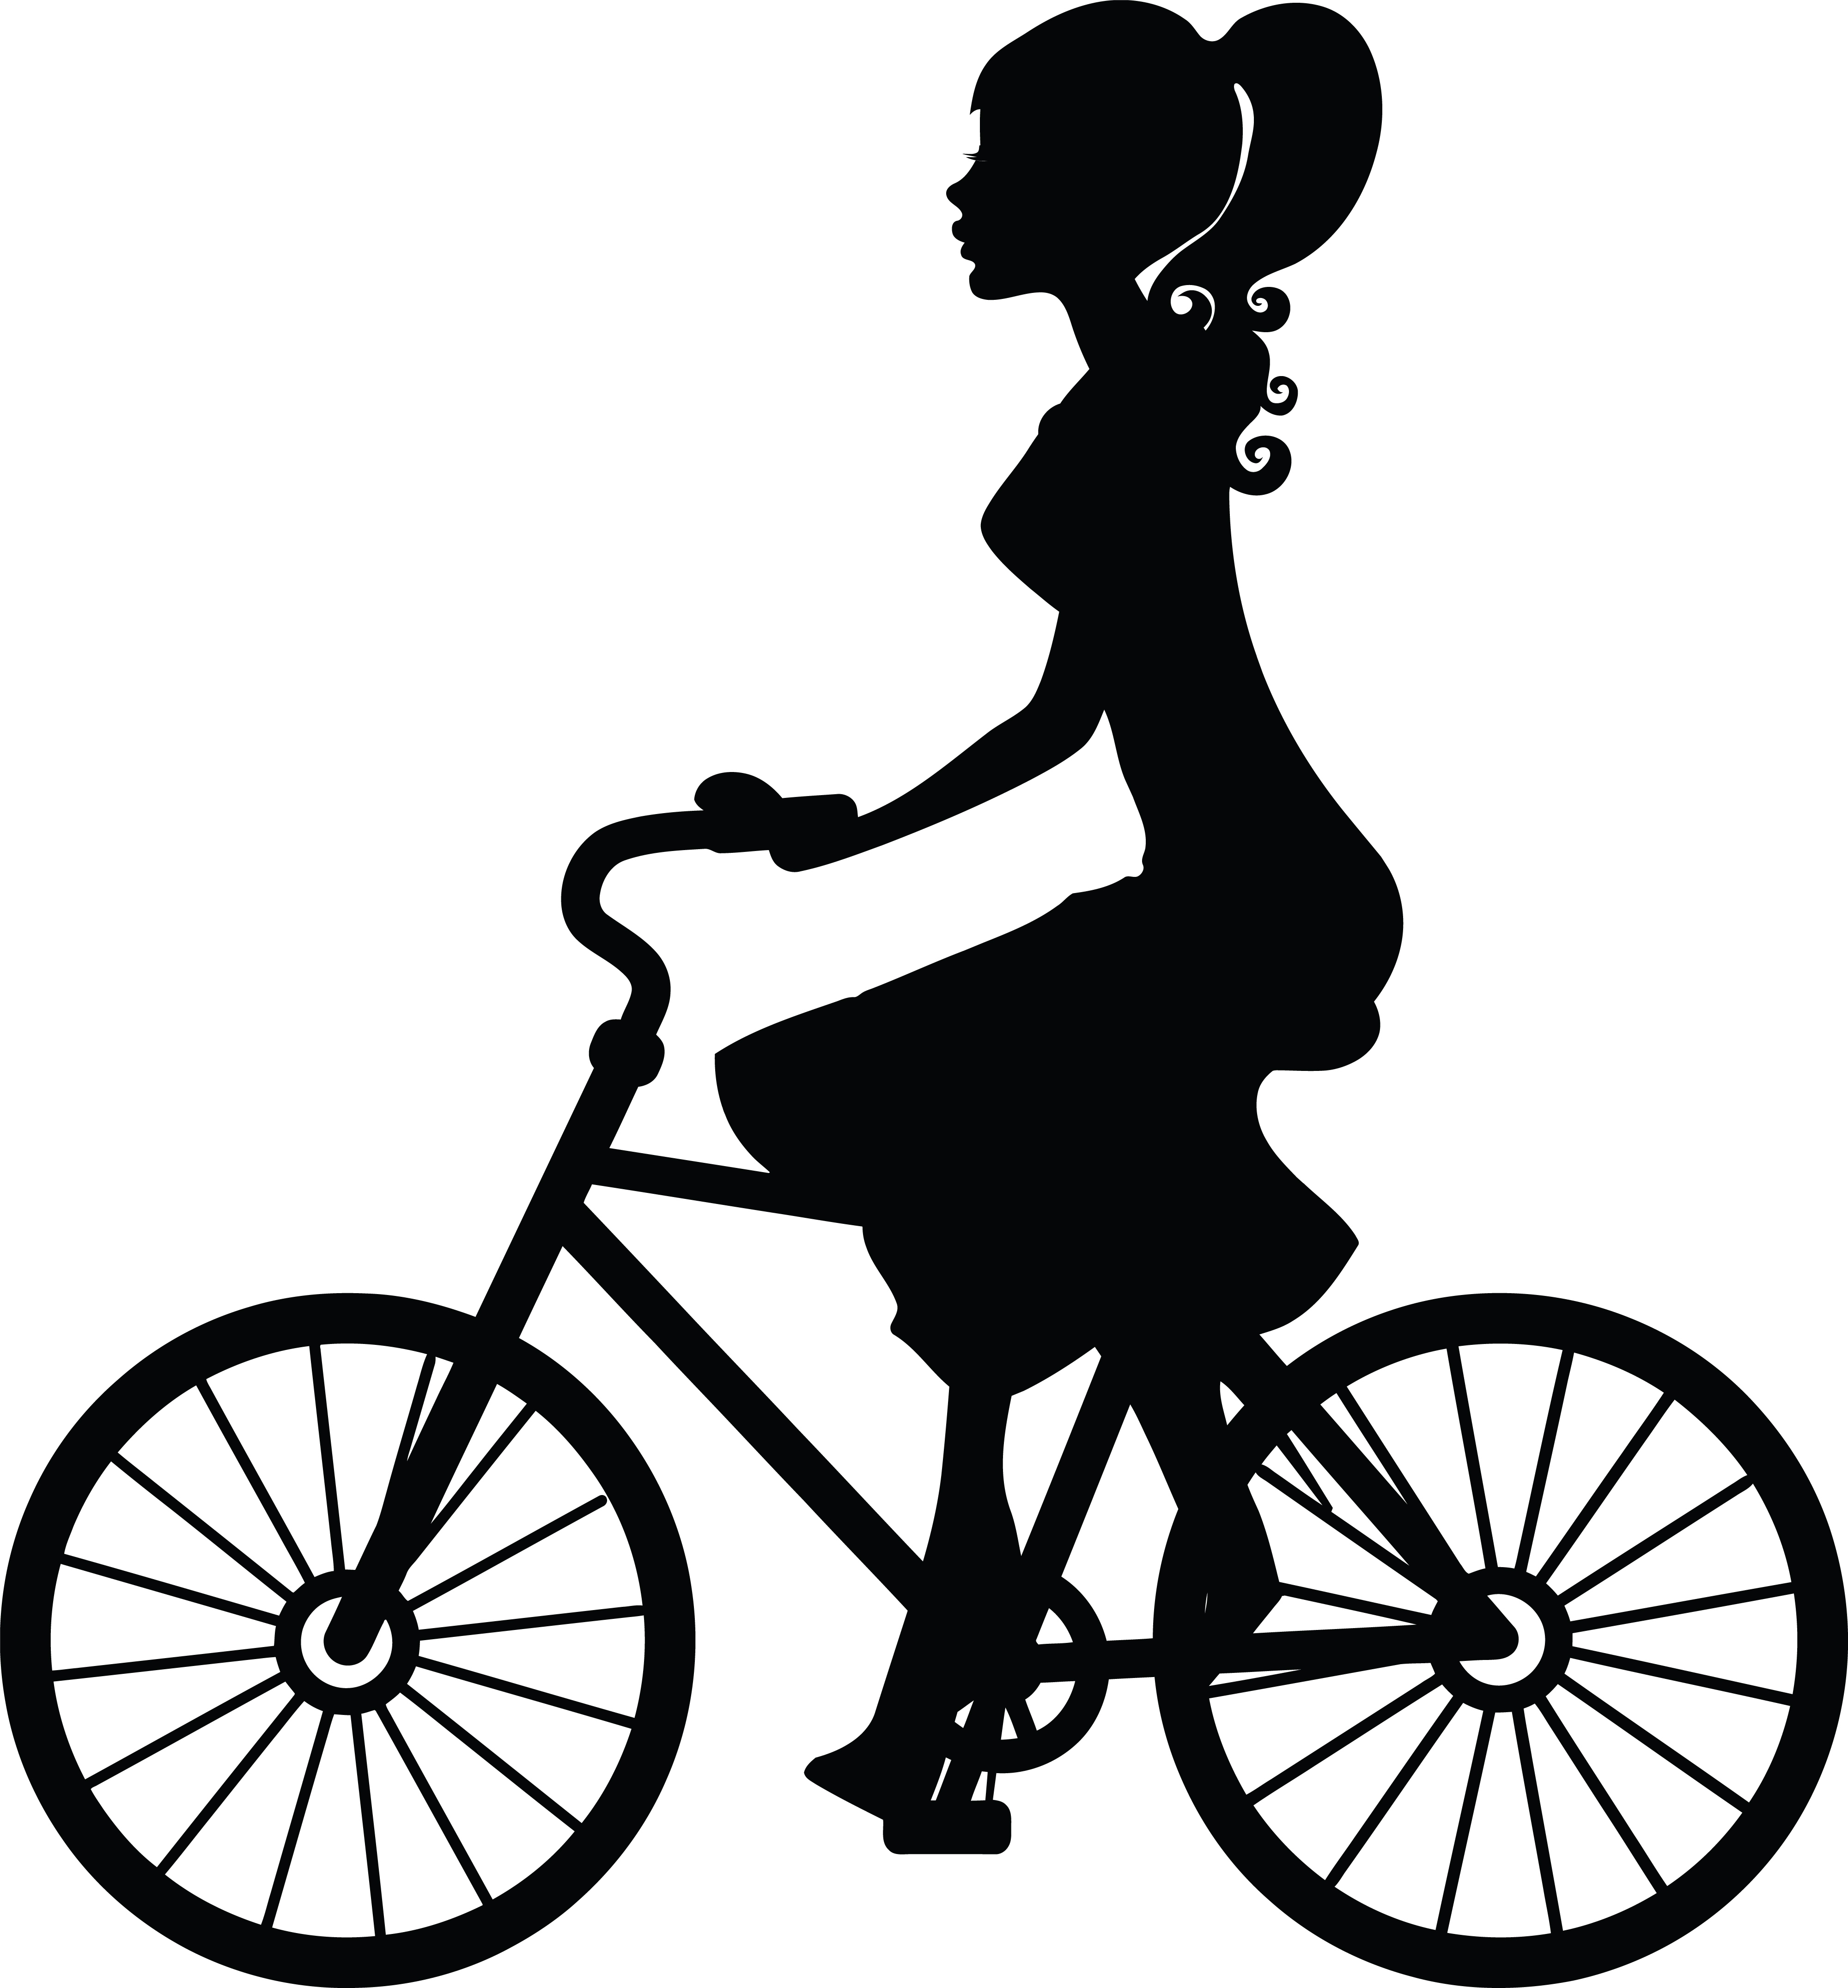 Clipart Of A woman riding a bicycle for Bicycle Clipart Black And White  29jwn